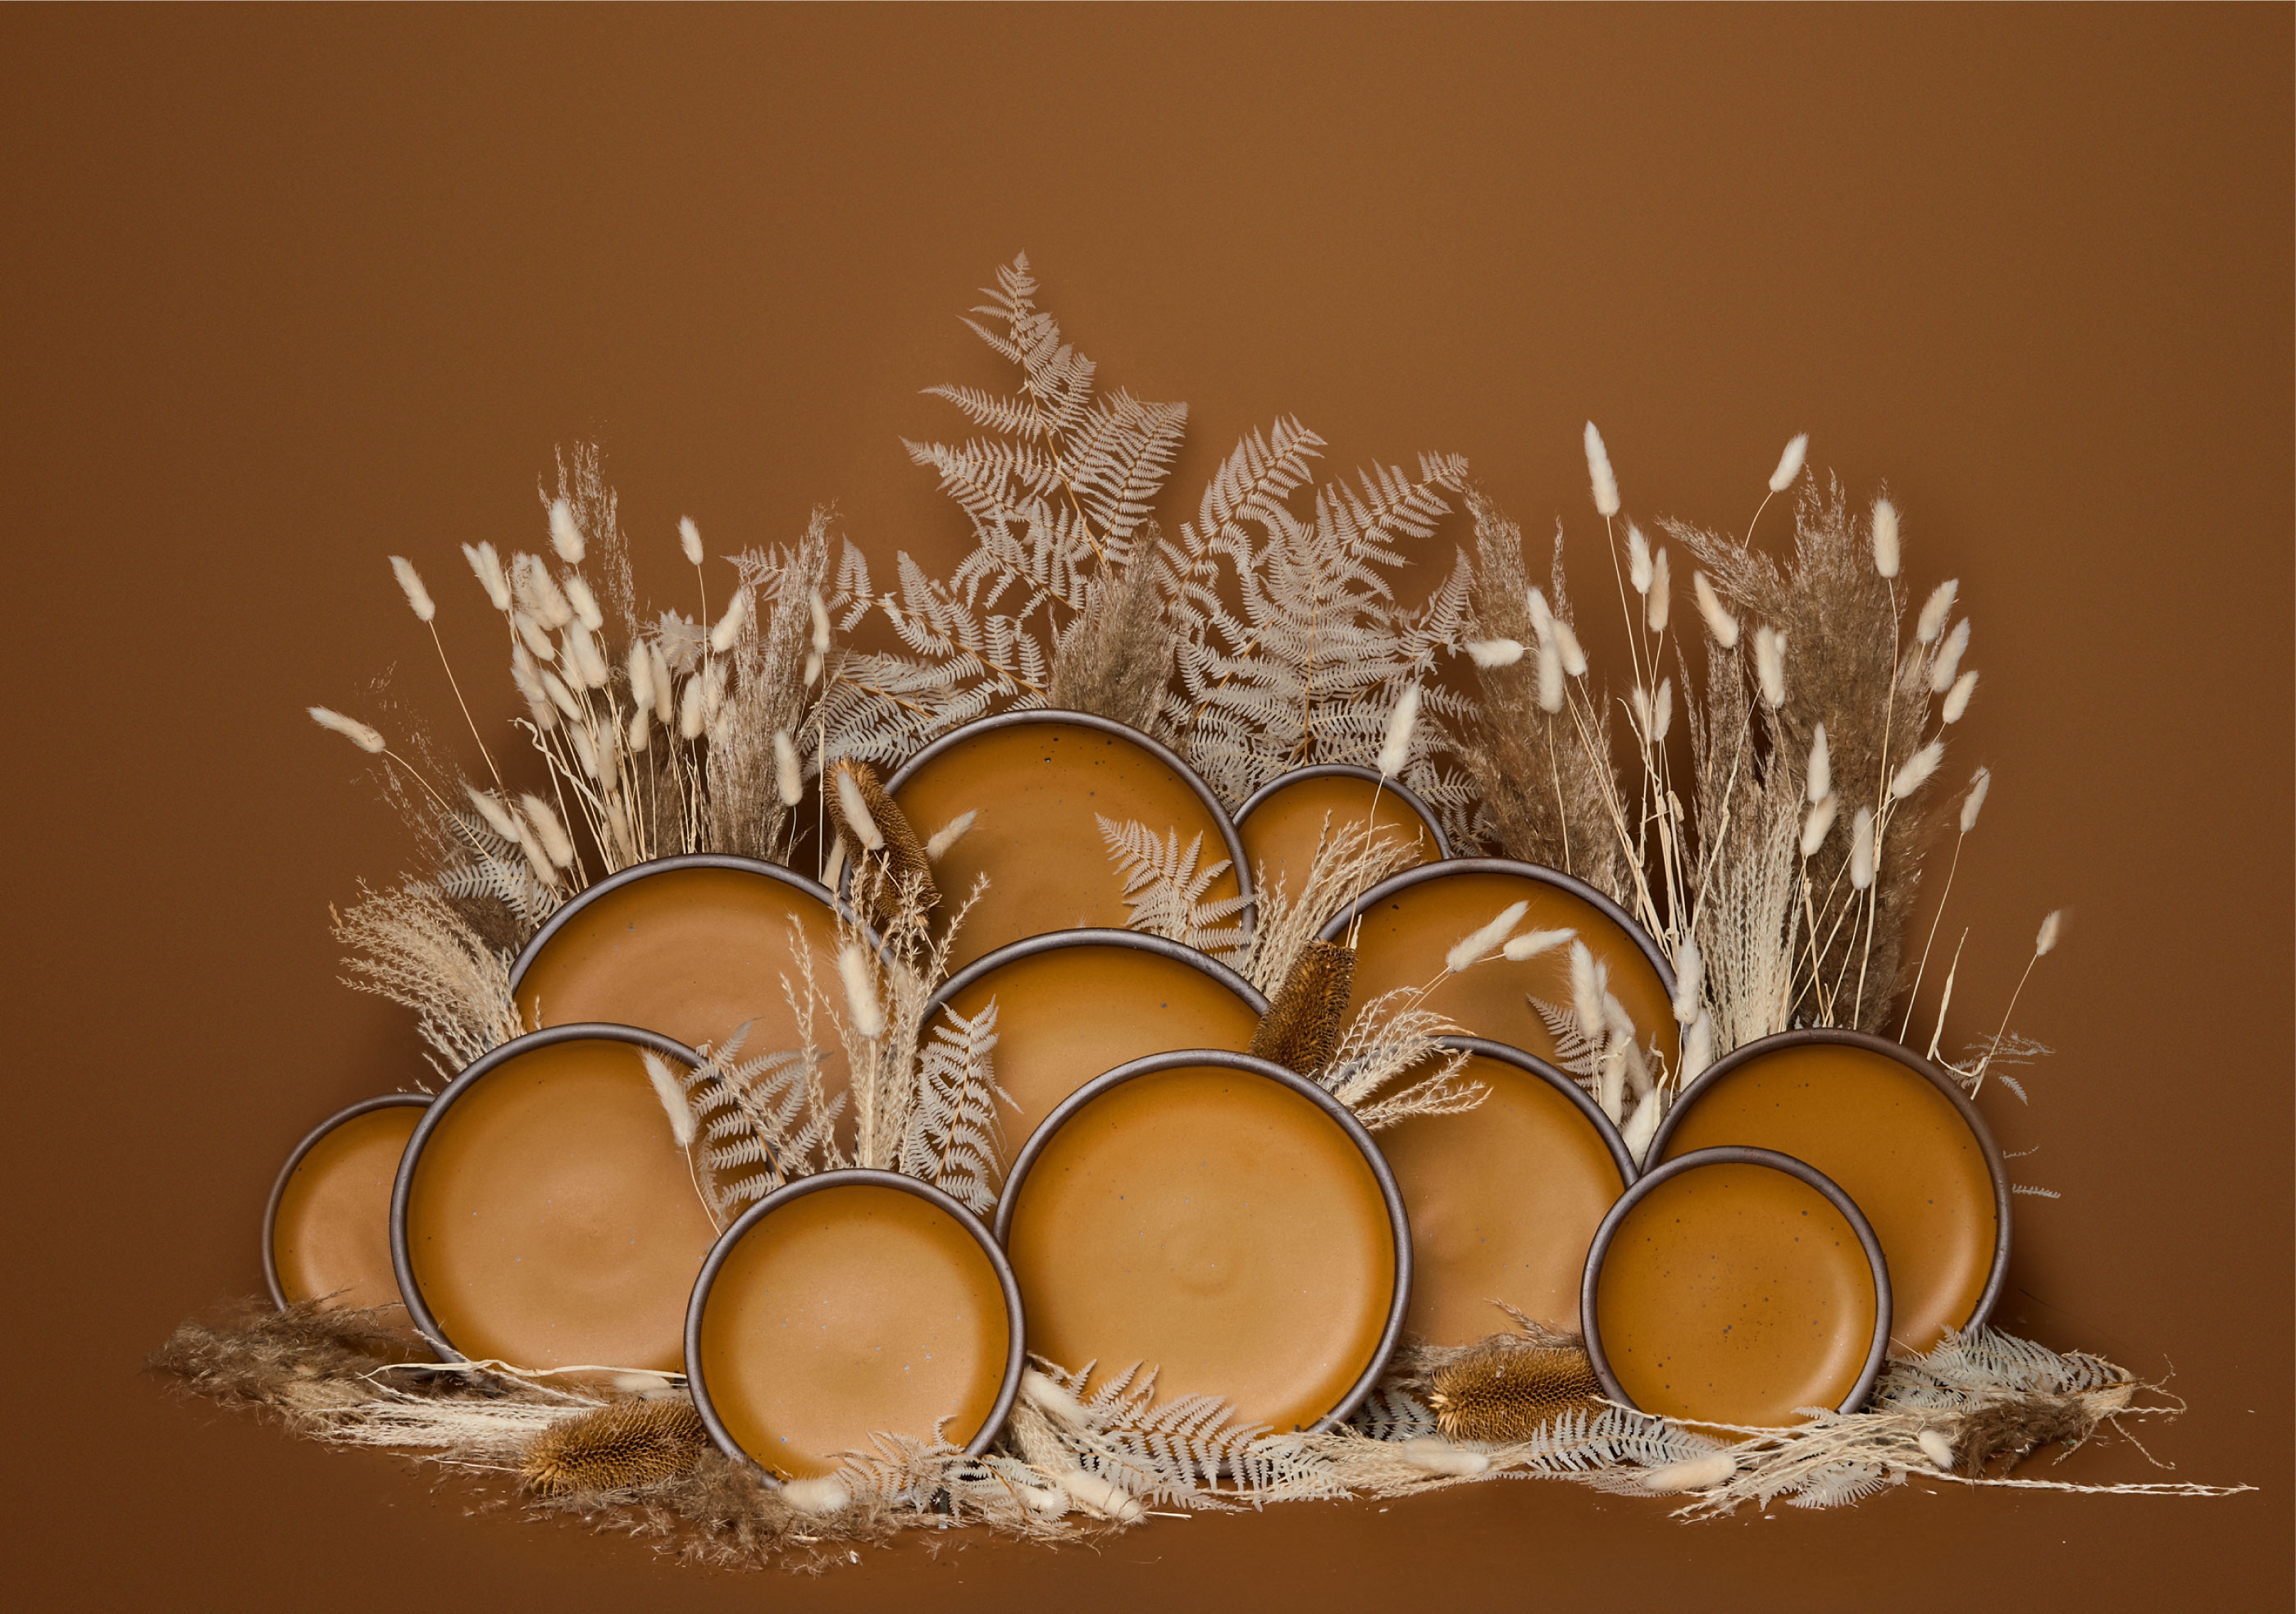 Harvest Moon plates from East Fork